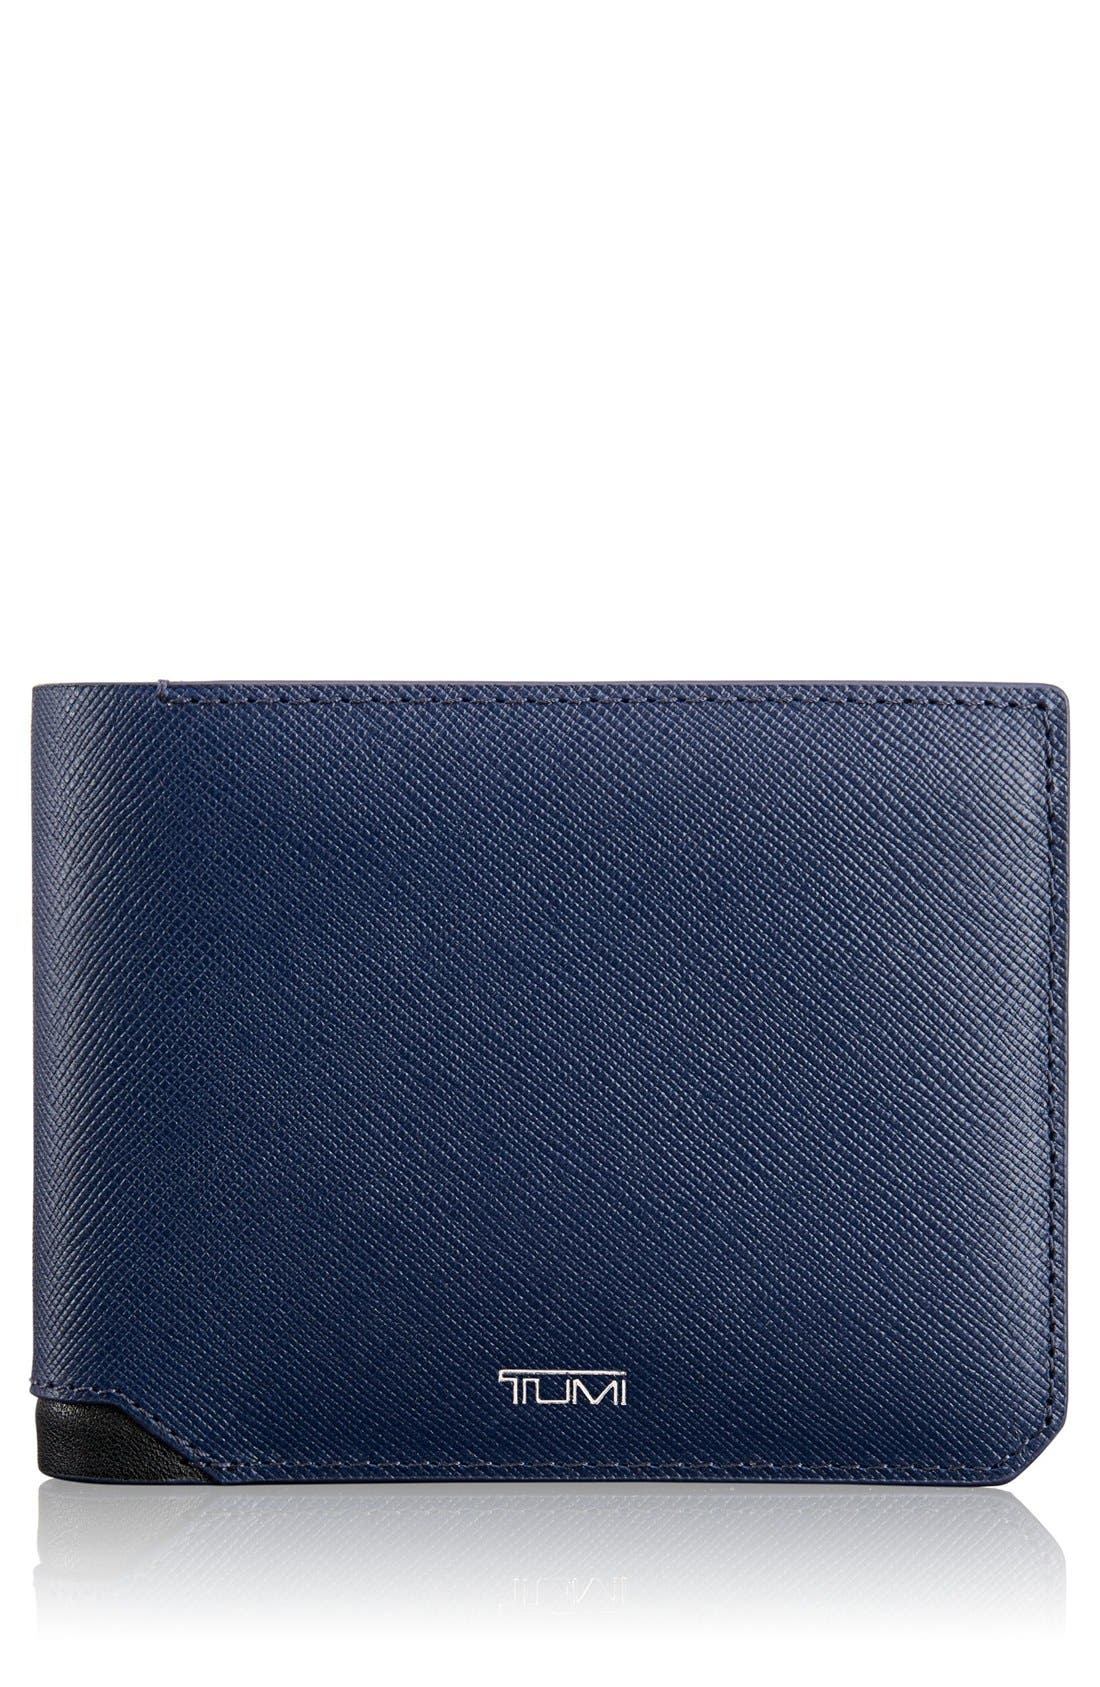 Tumi 'Mason' Global Leather Wallet with Removable Passcase